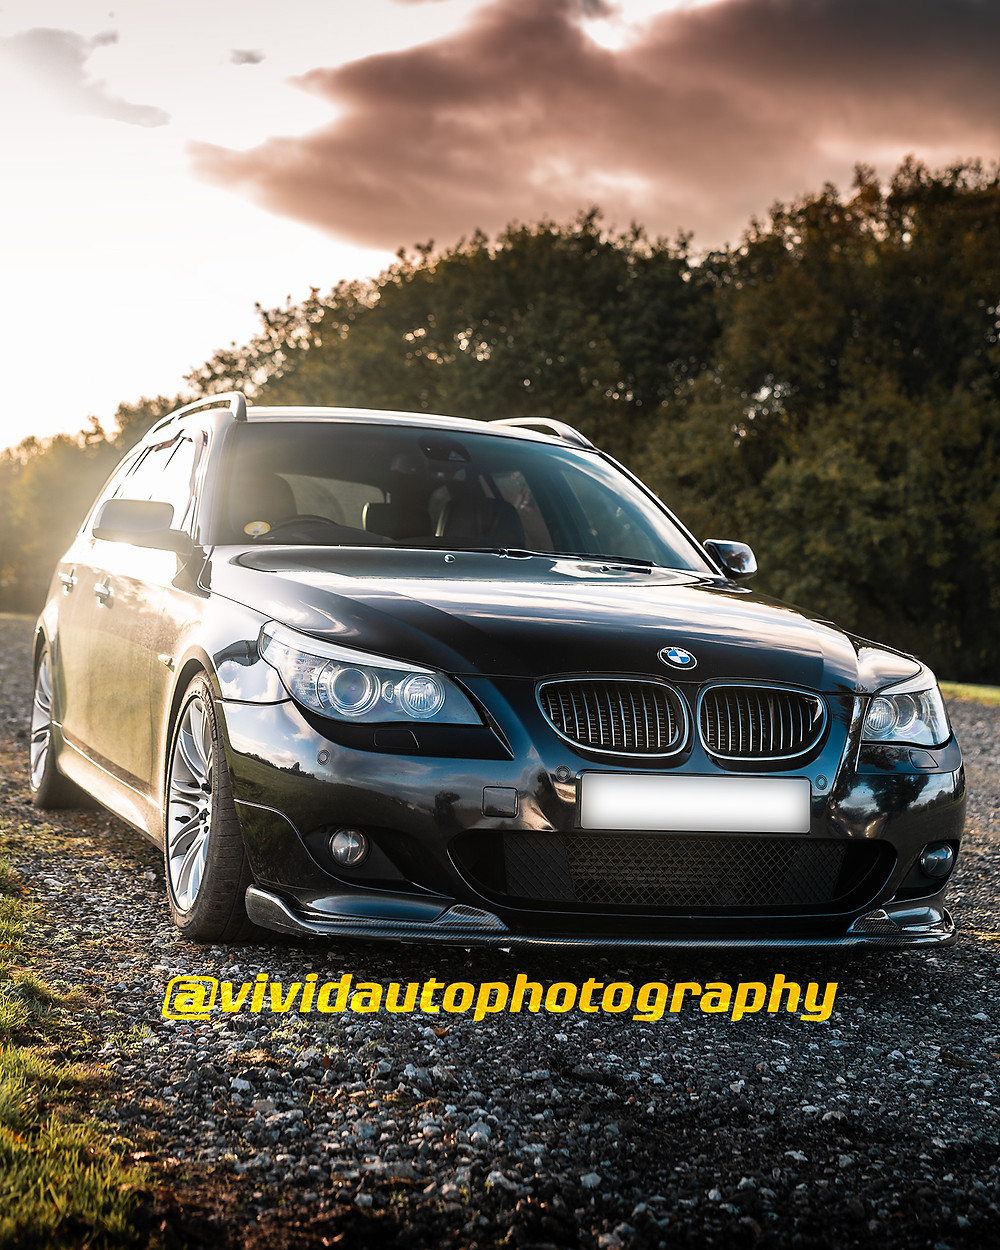 BMW 535d Touring | Charcoal Black | Front three quarters poster